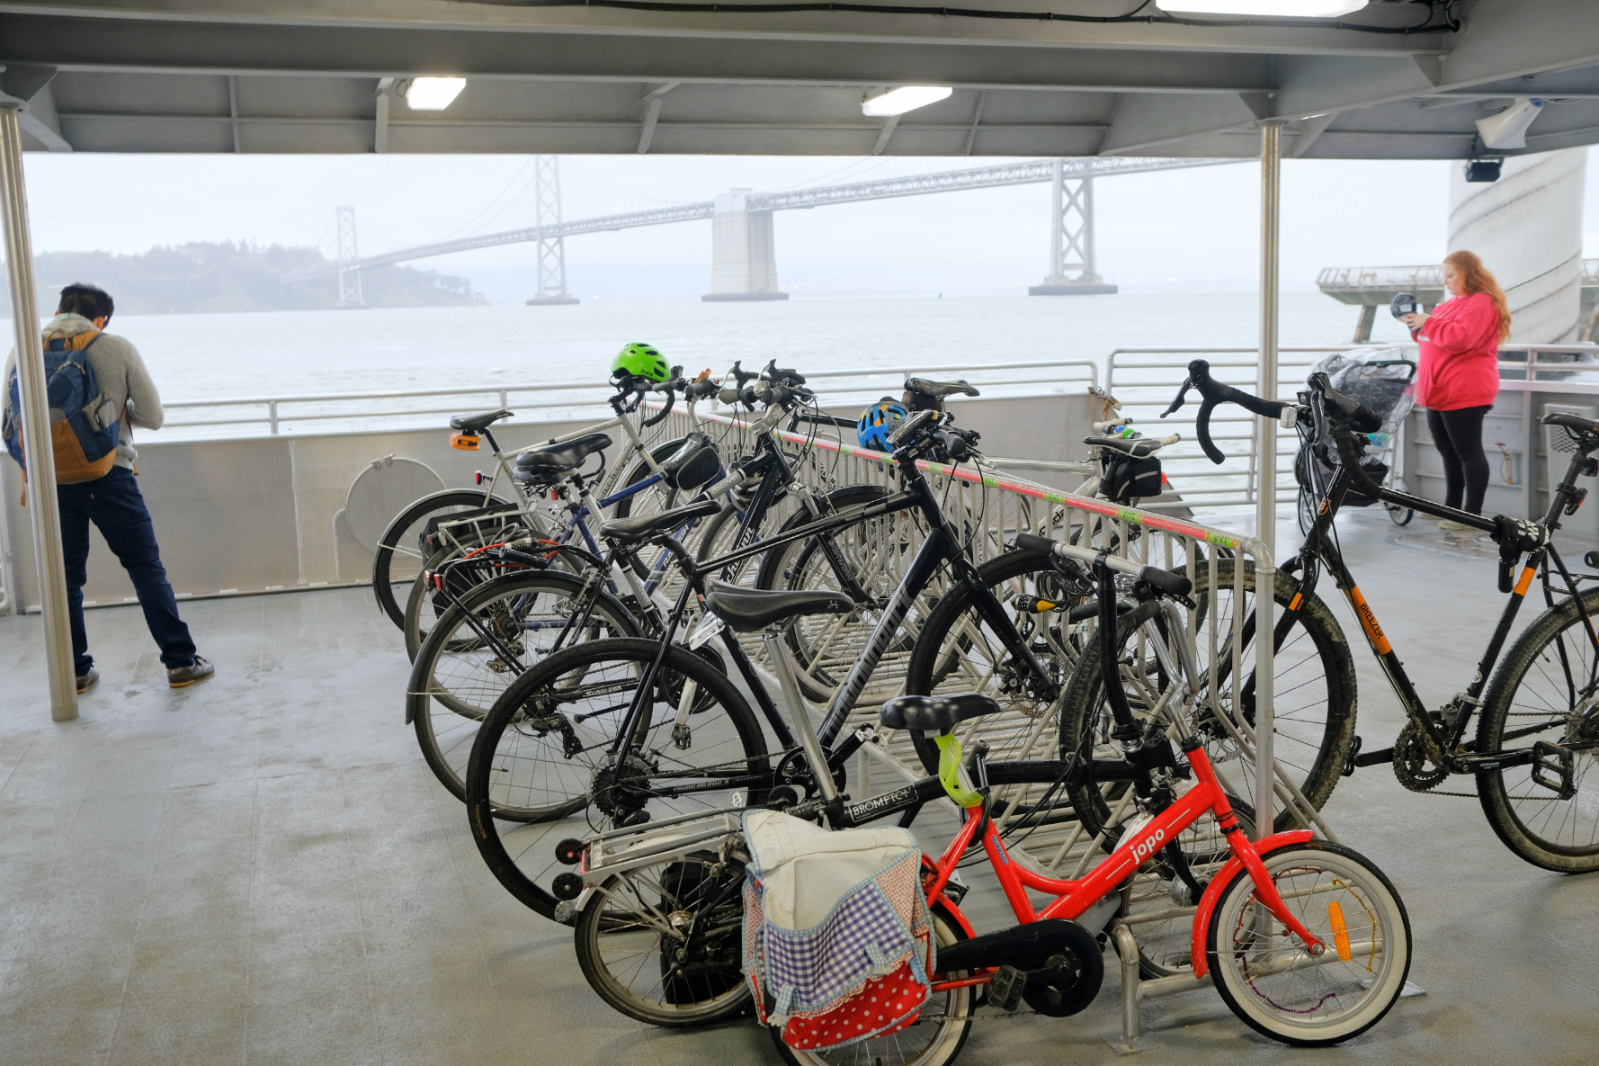 San Francisco Bay Ferry offers service to Alameda, Oakland and other terminals. Photo by Kyle Ramey of Bikabout.